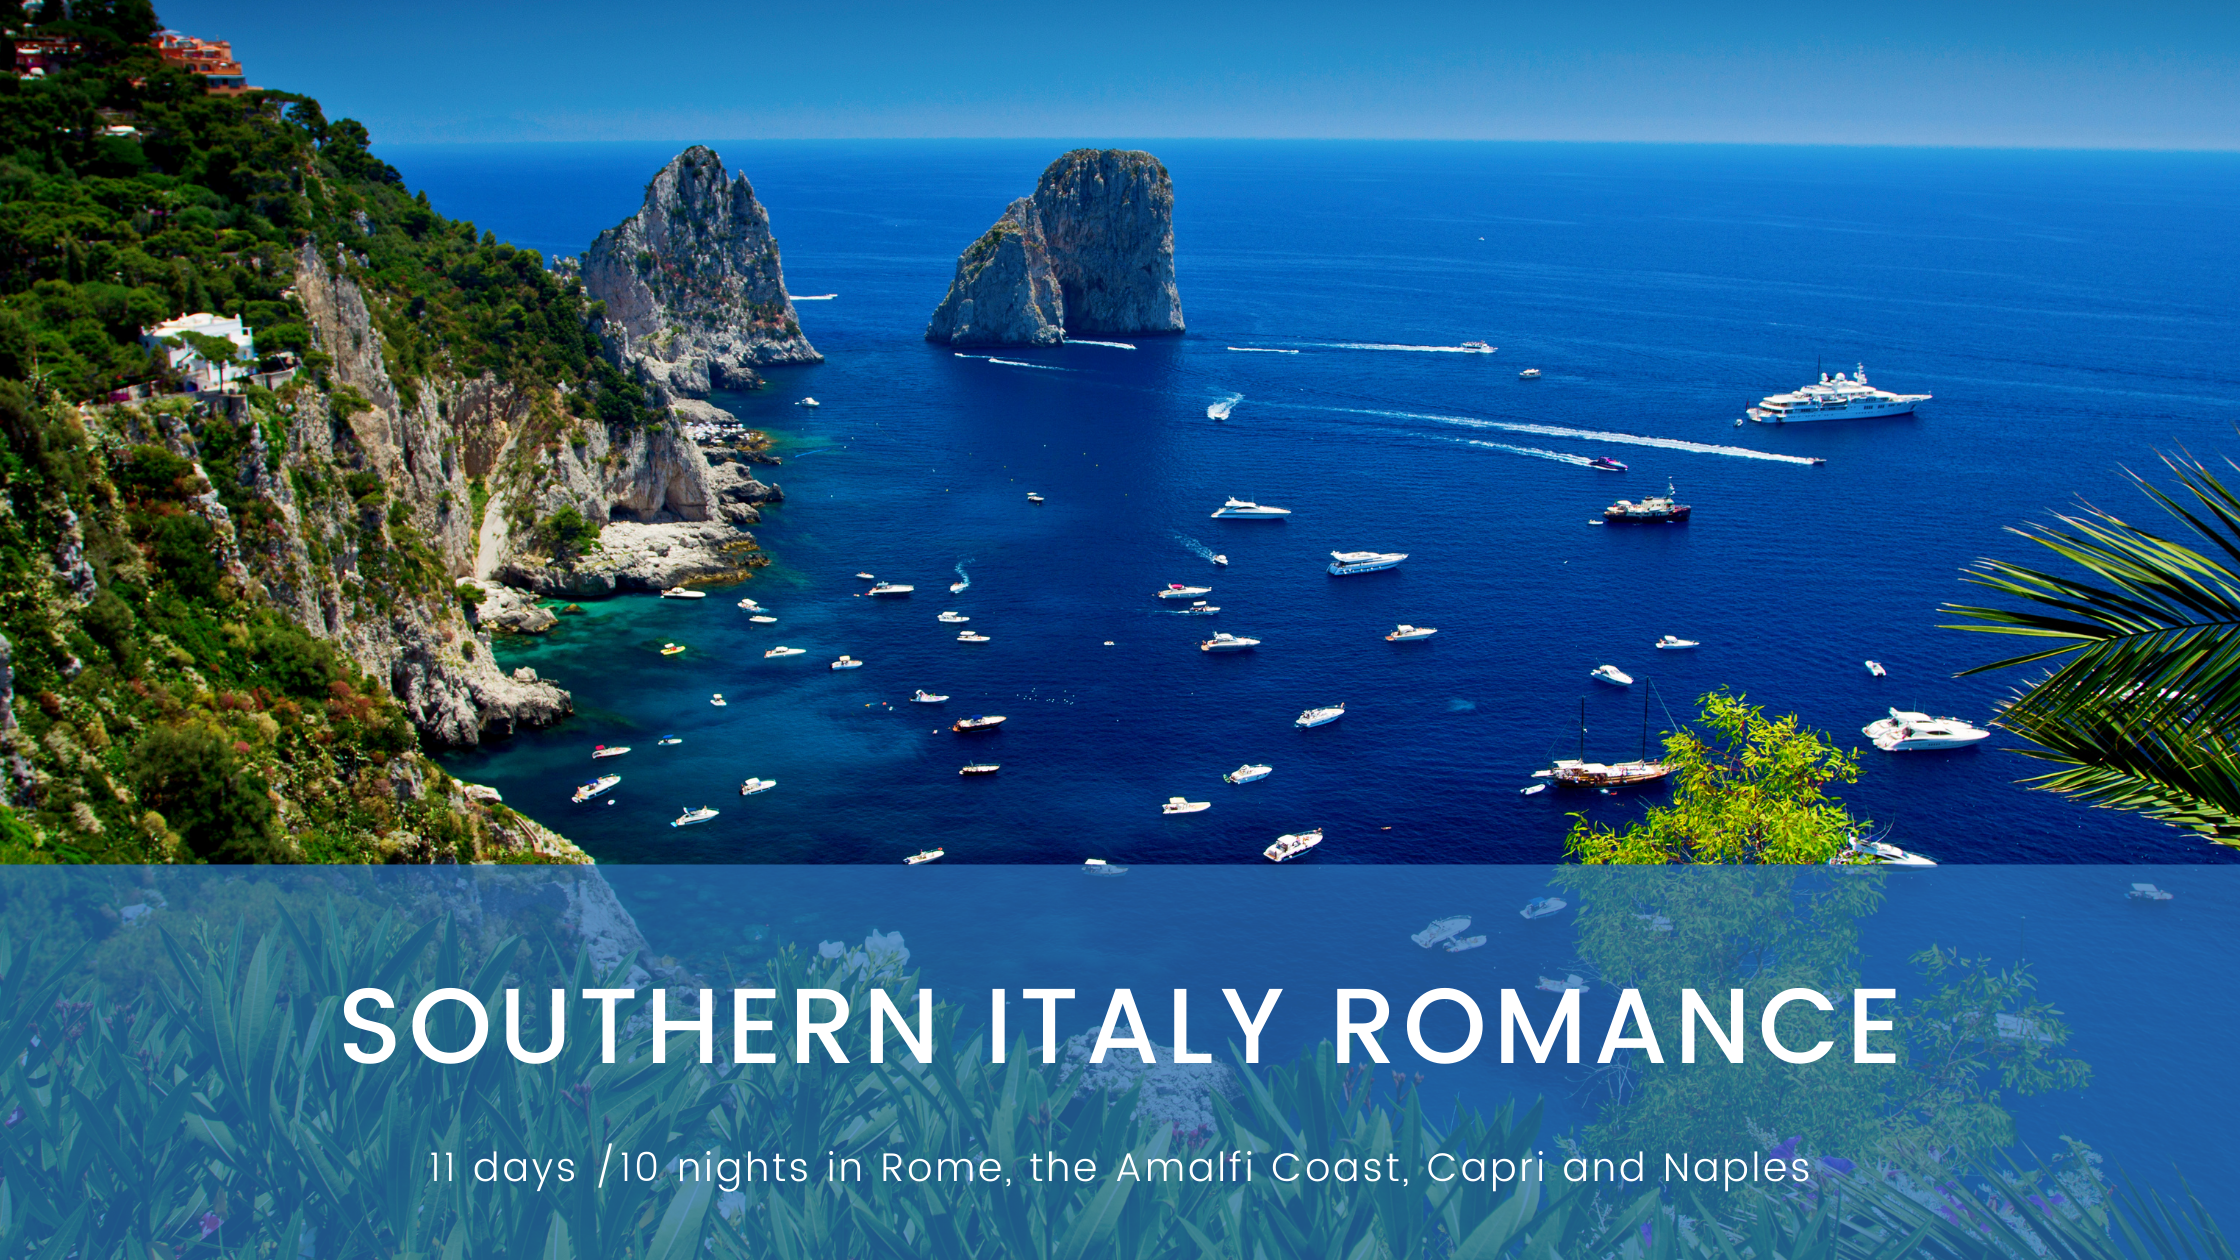 Southern Italy Romance